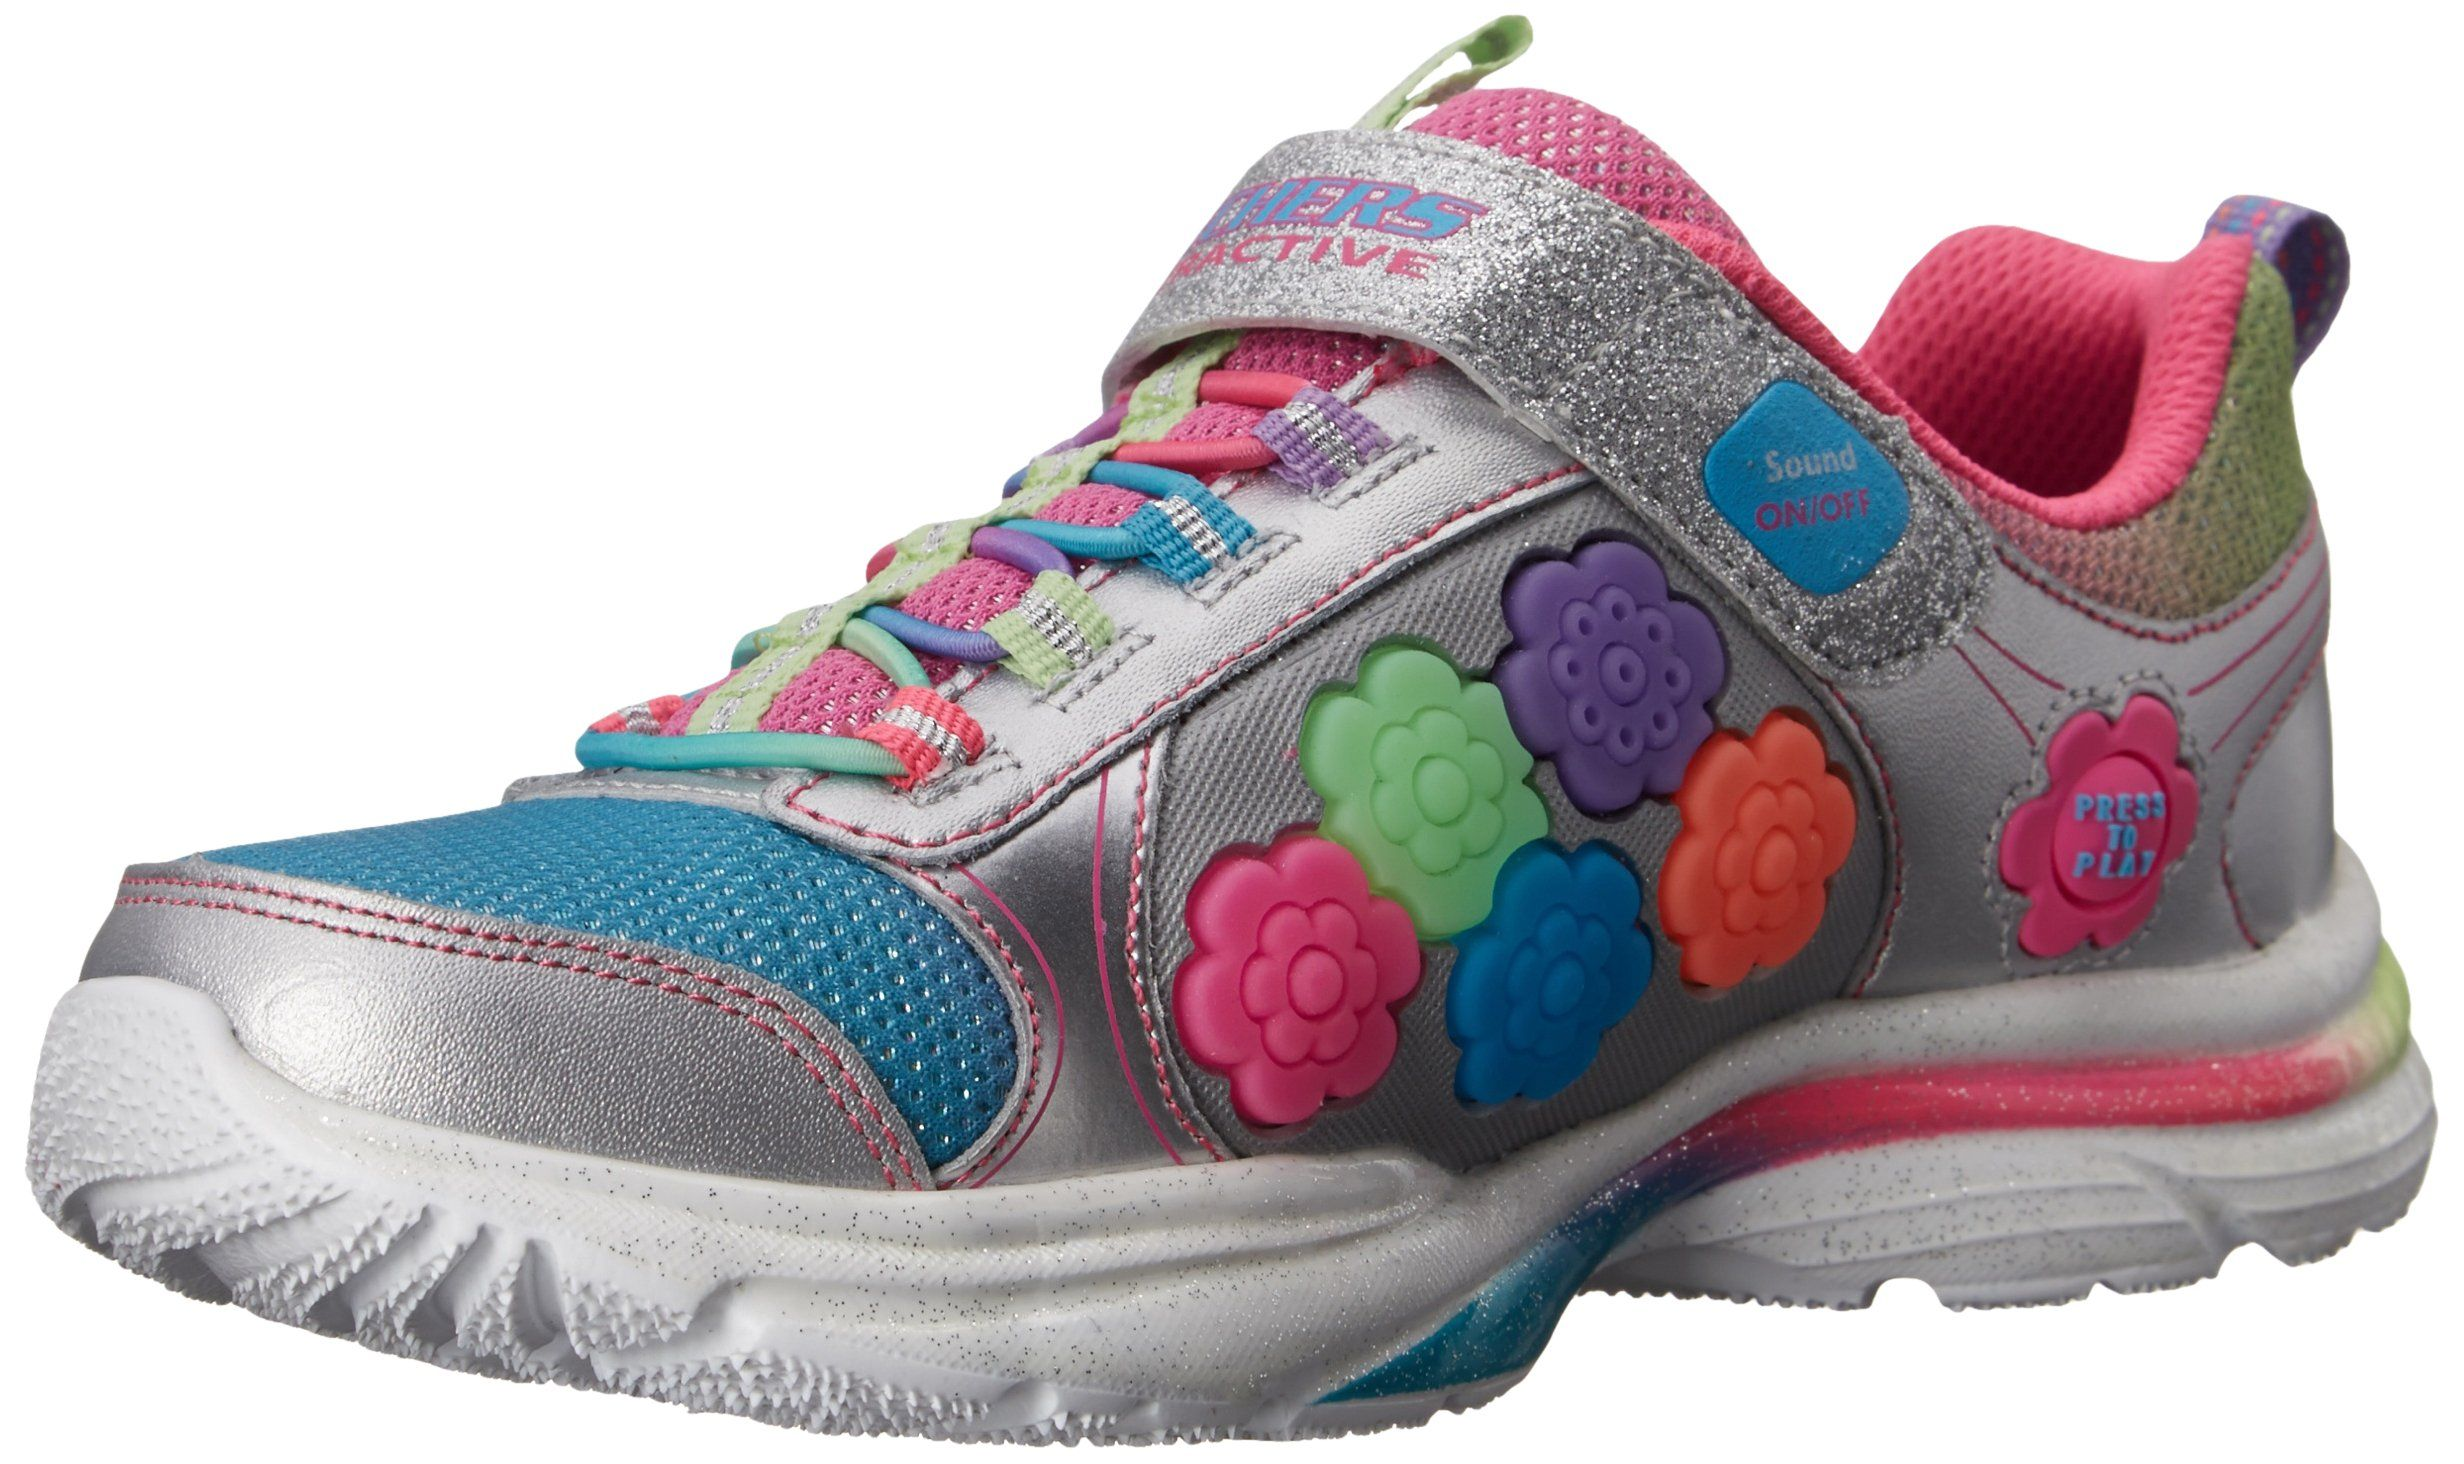 Skechers Kids 10900L Gamekicks Interactive Game and Light-Up Sneaker  (Little Kid/Big